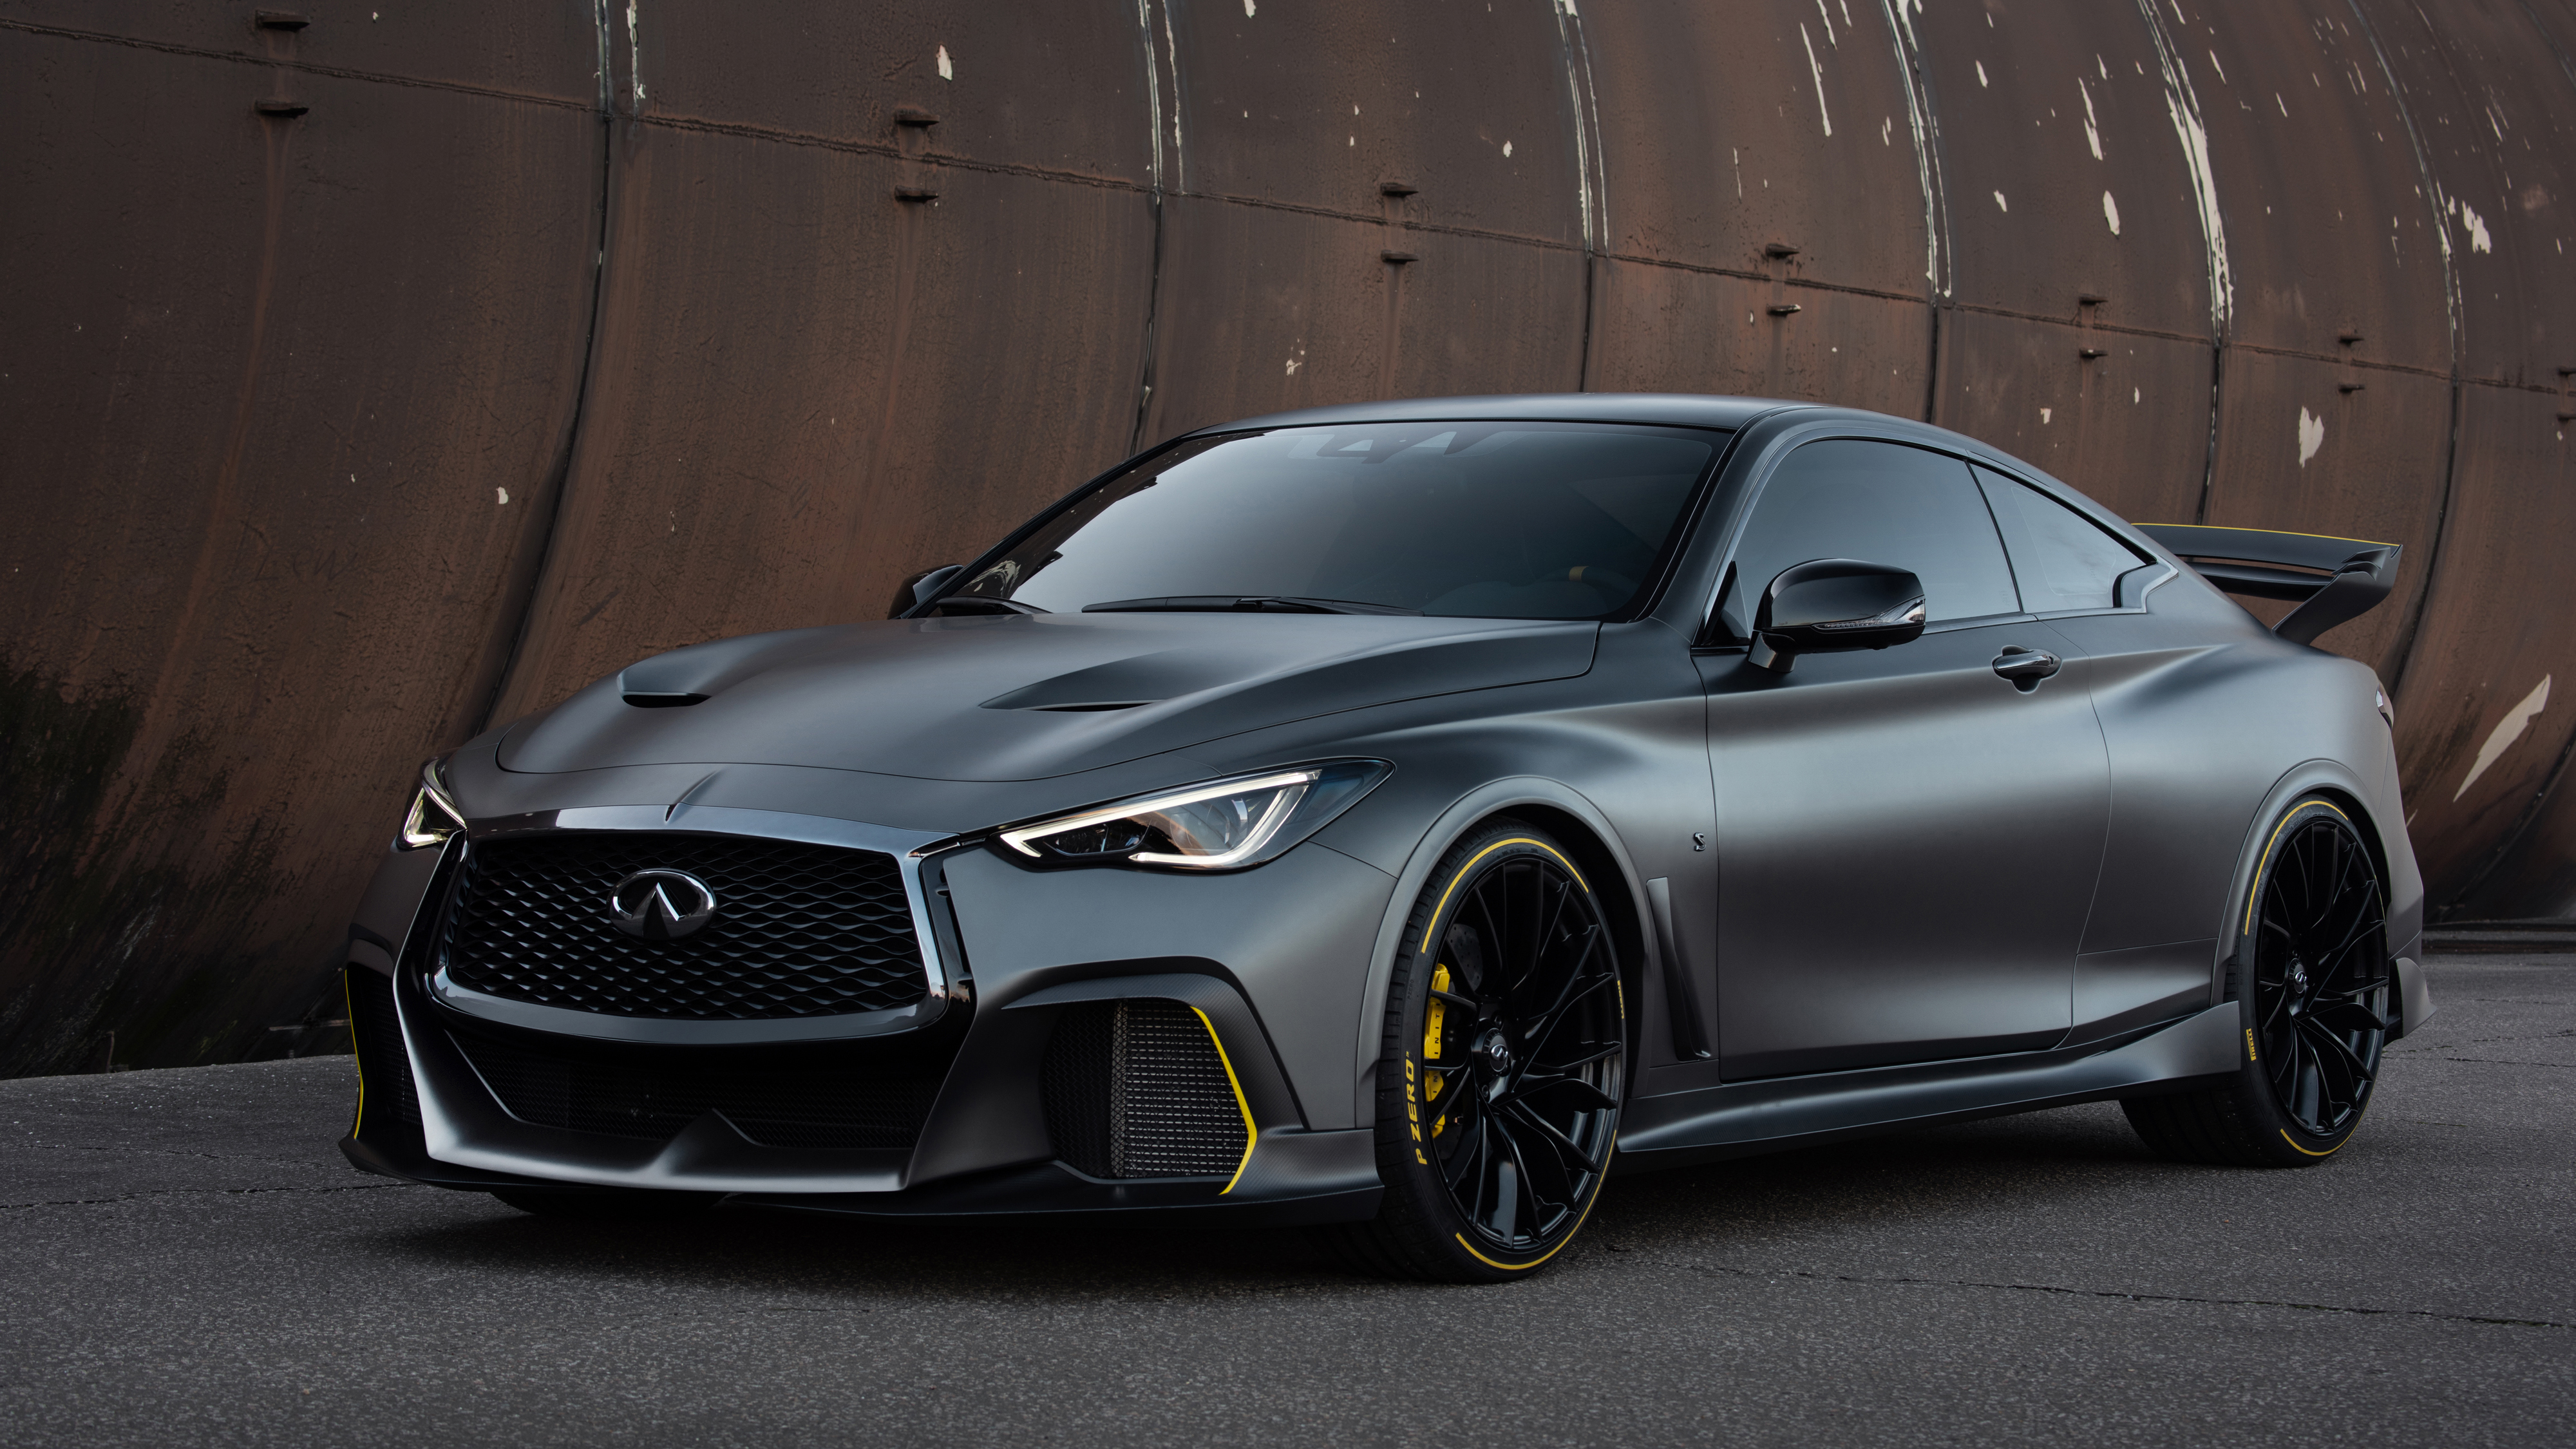 2021 Infiniti Q60 Project Black S Price and Release date